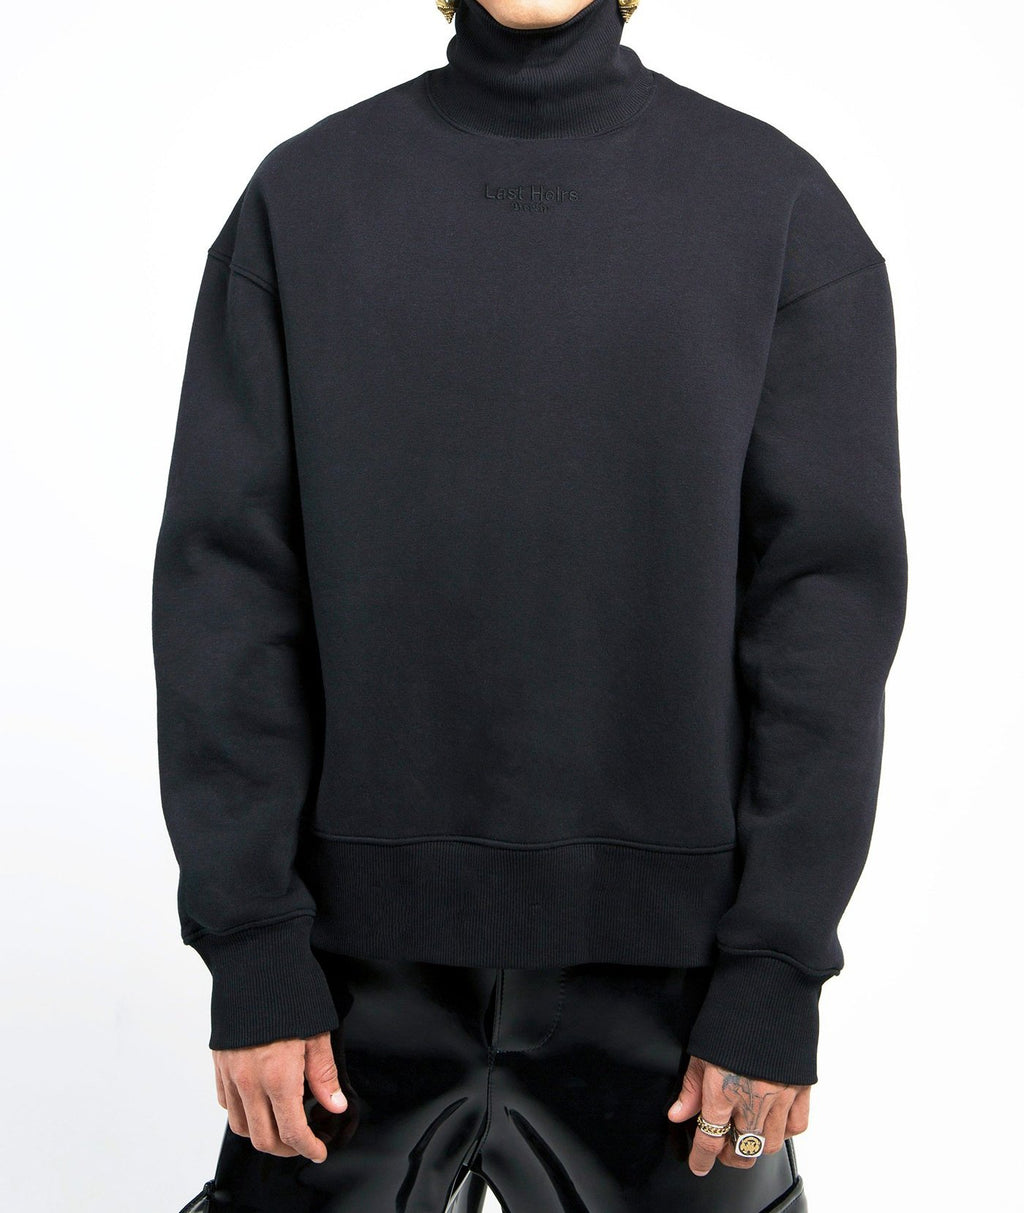 Weatherer Turtle Neck Pullover